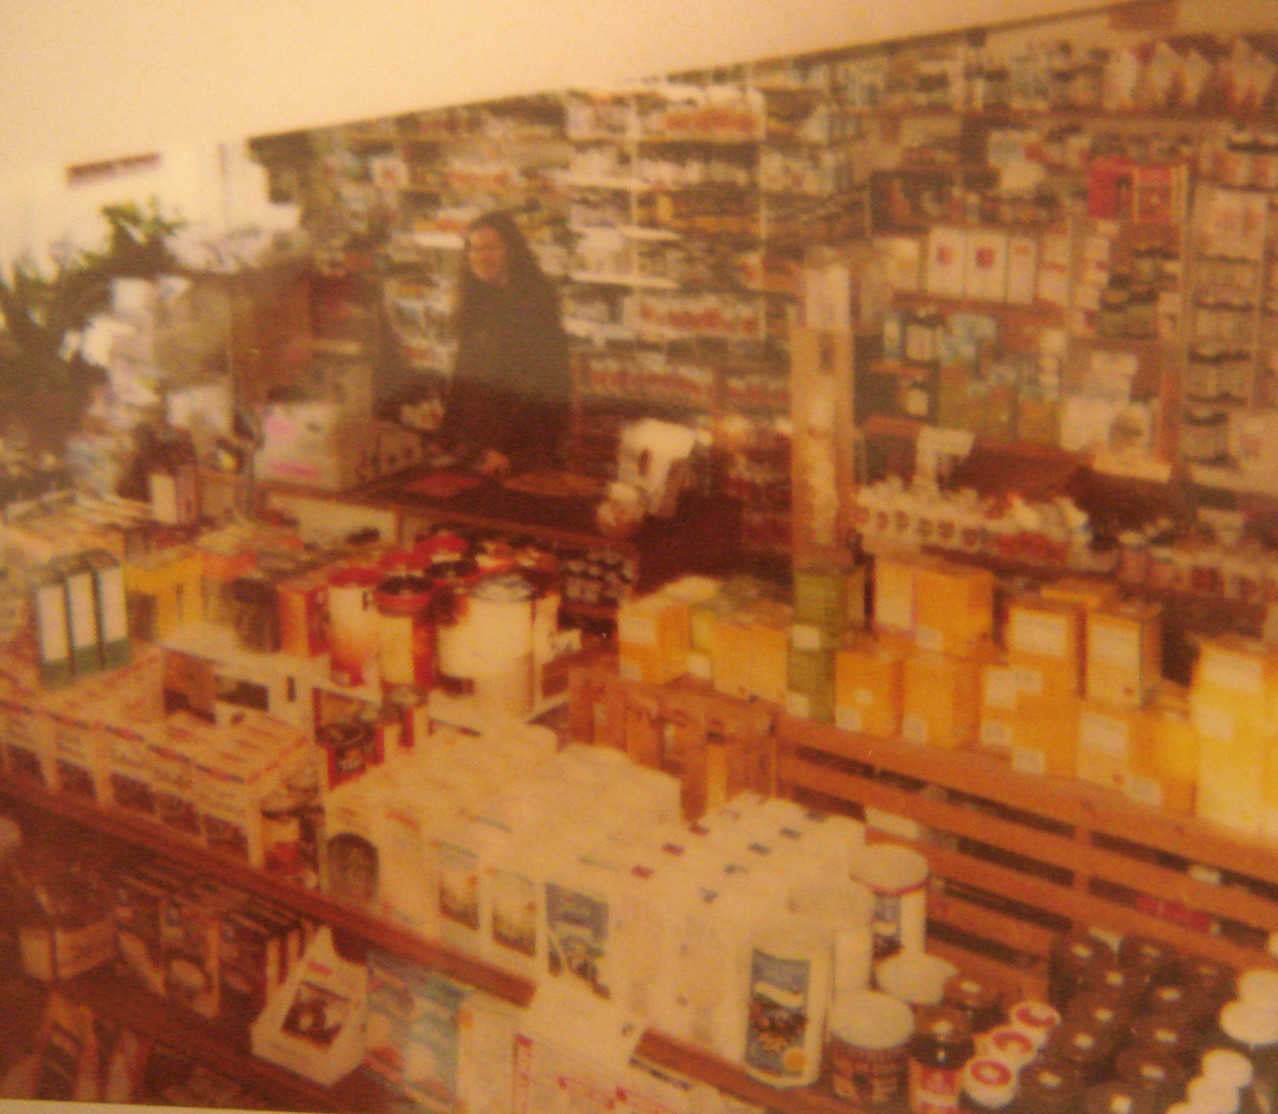 Vintage shop interior circa mid-90's, packed to the rafters